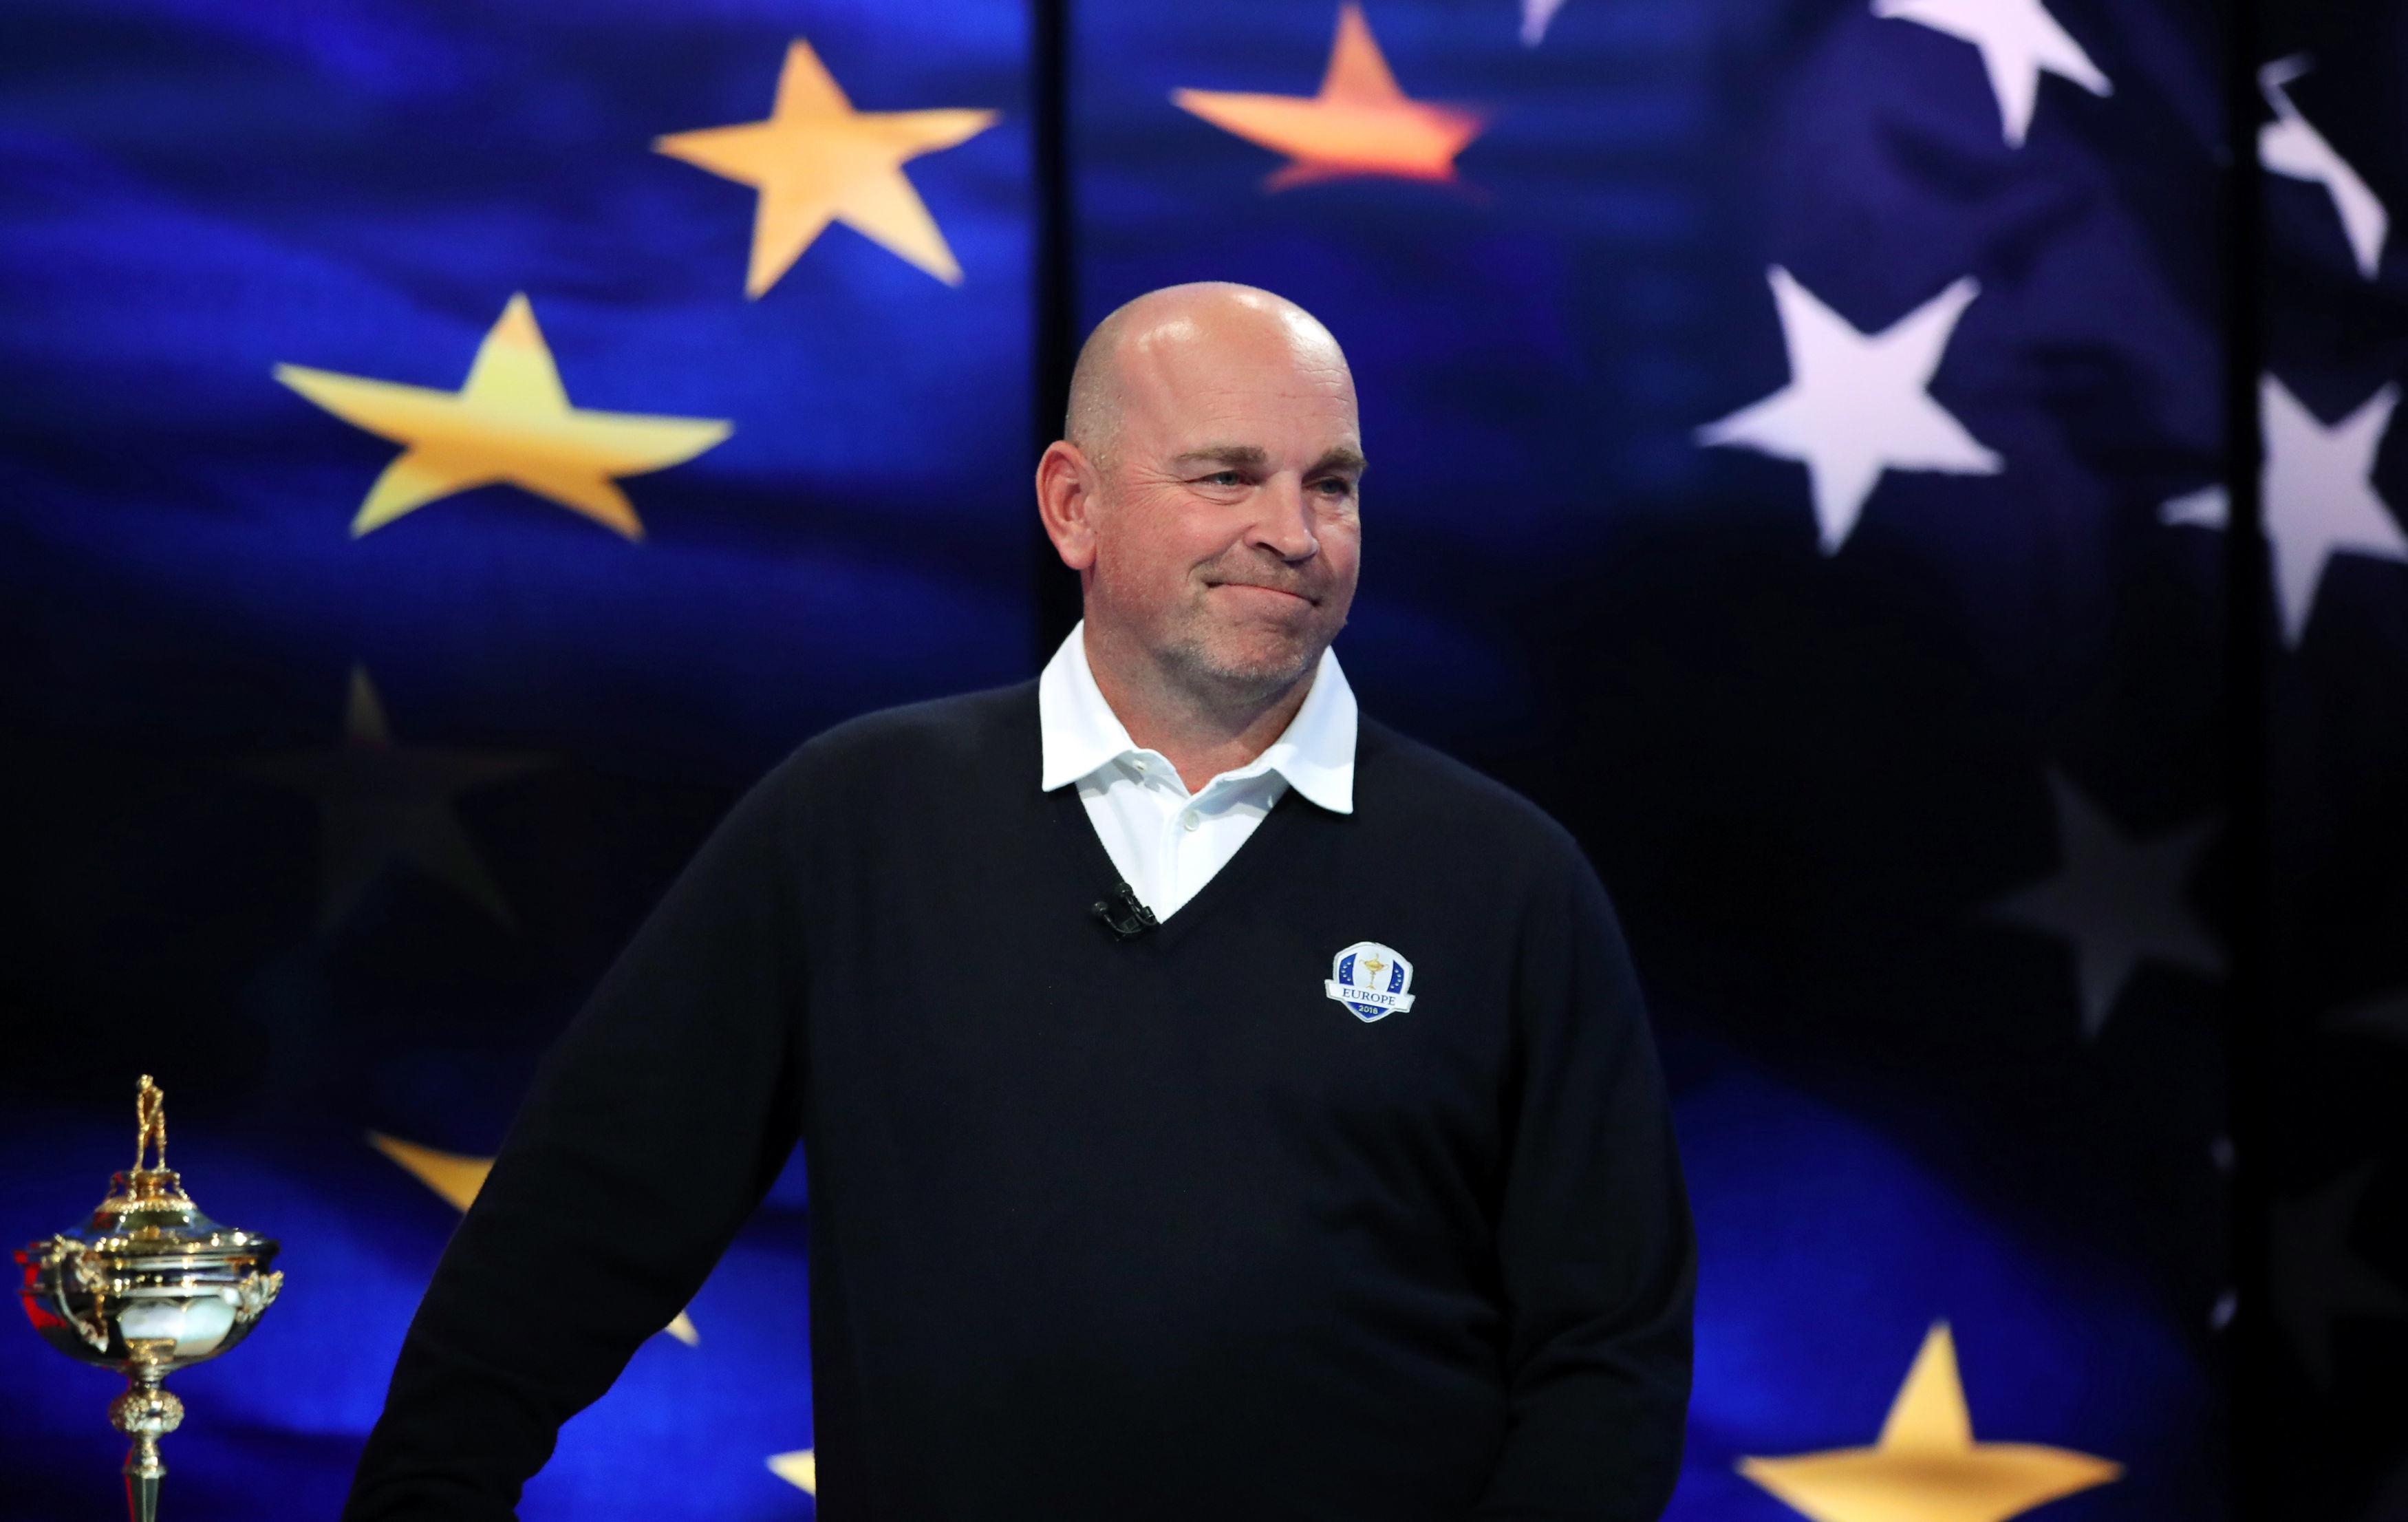 Thomas Bjorn now has his full team ahead of the historic golfing event